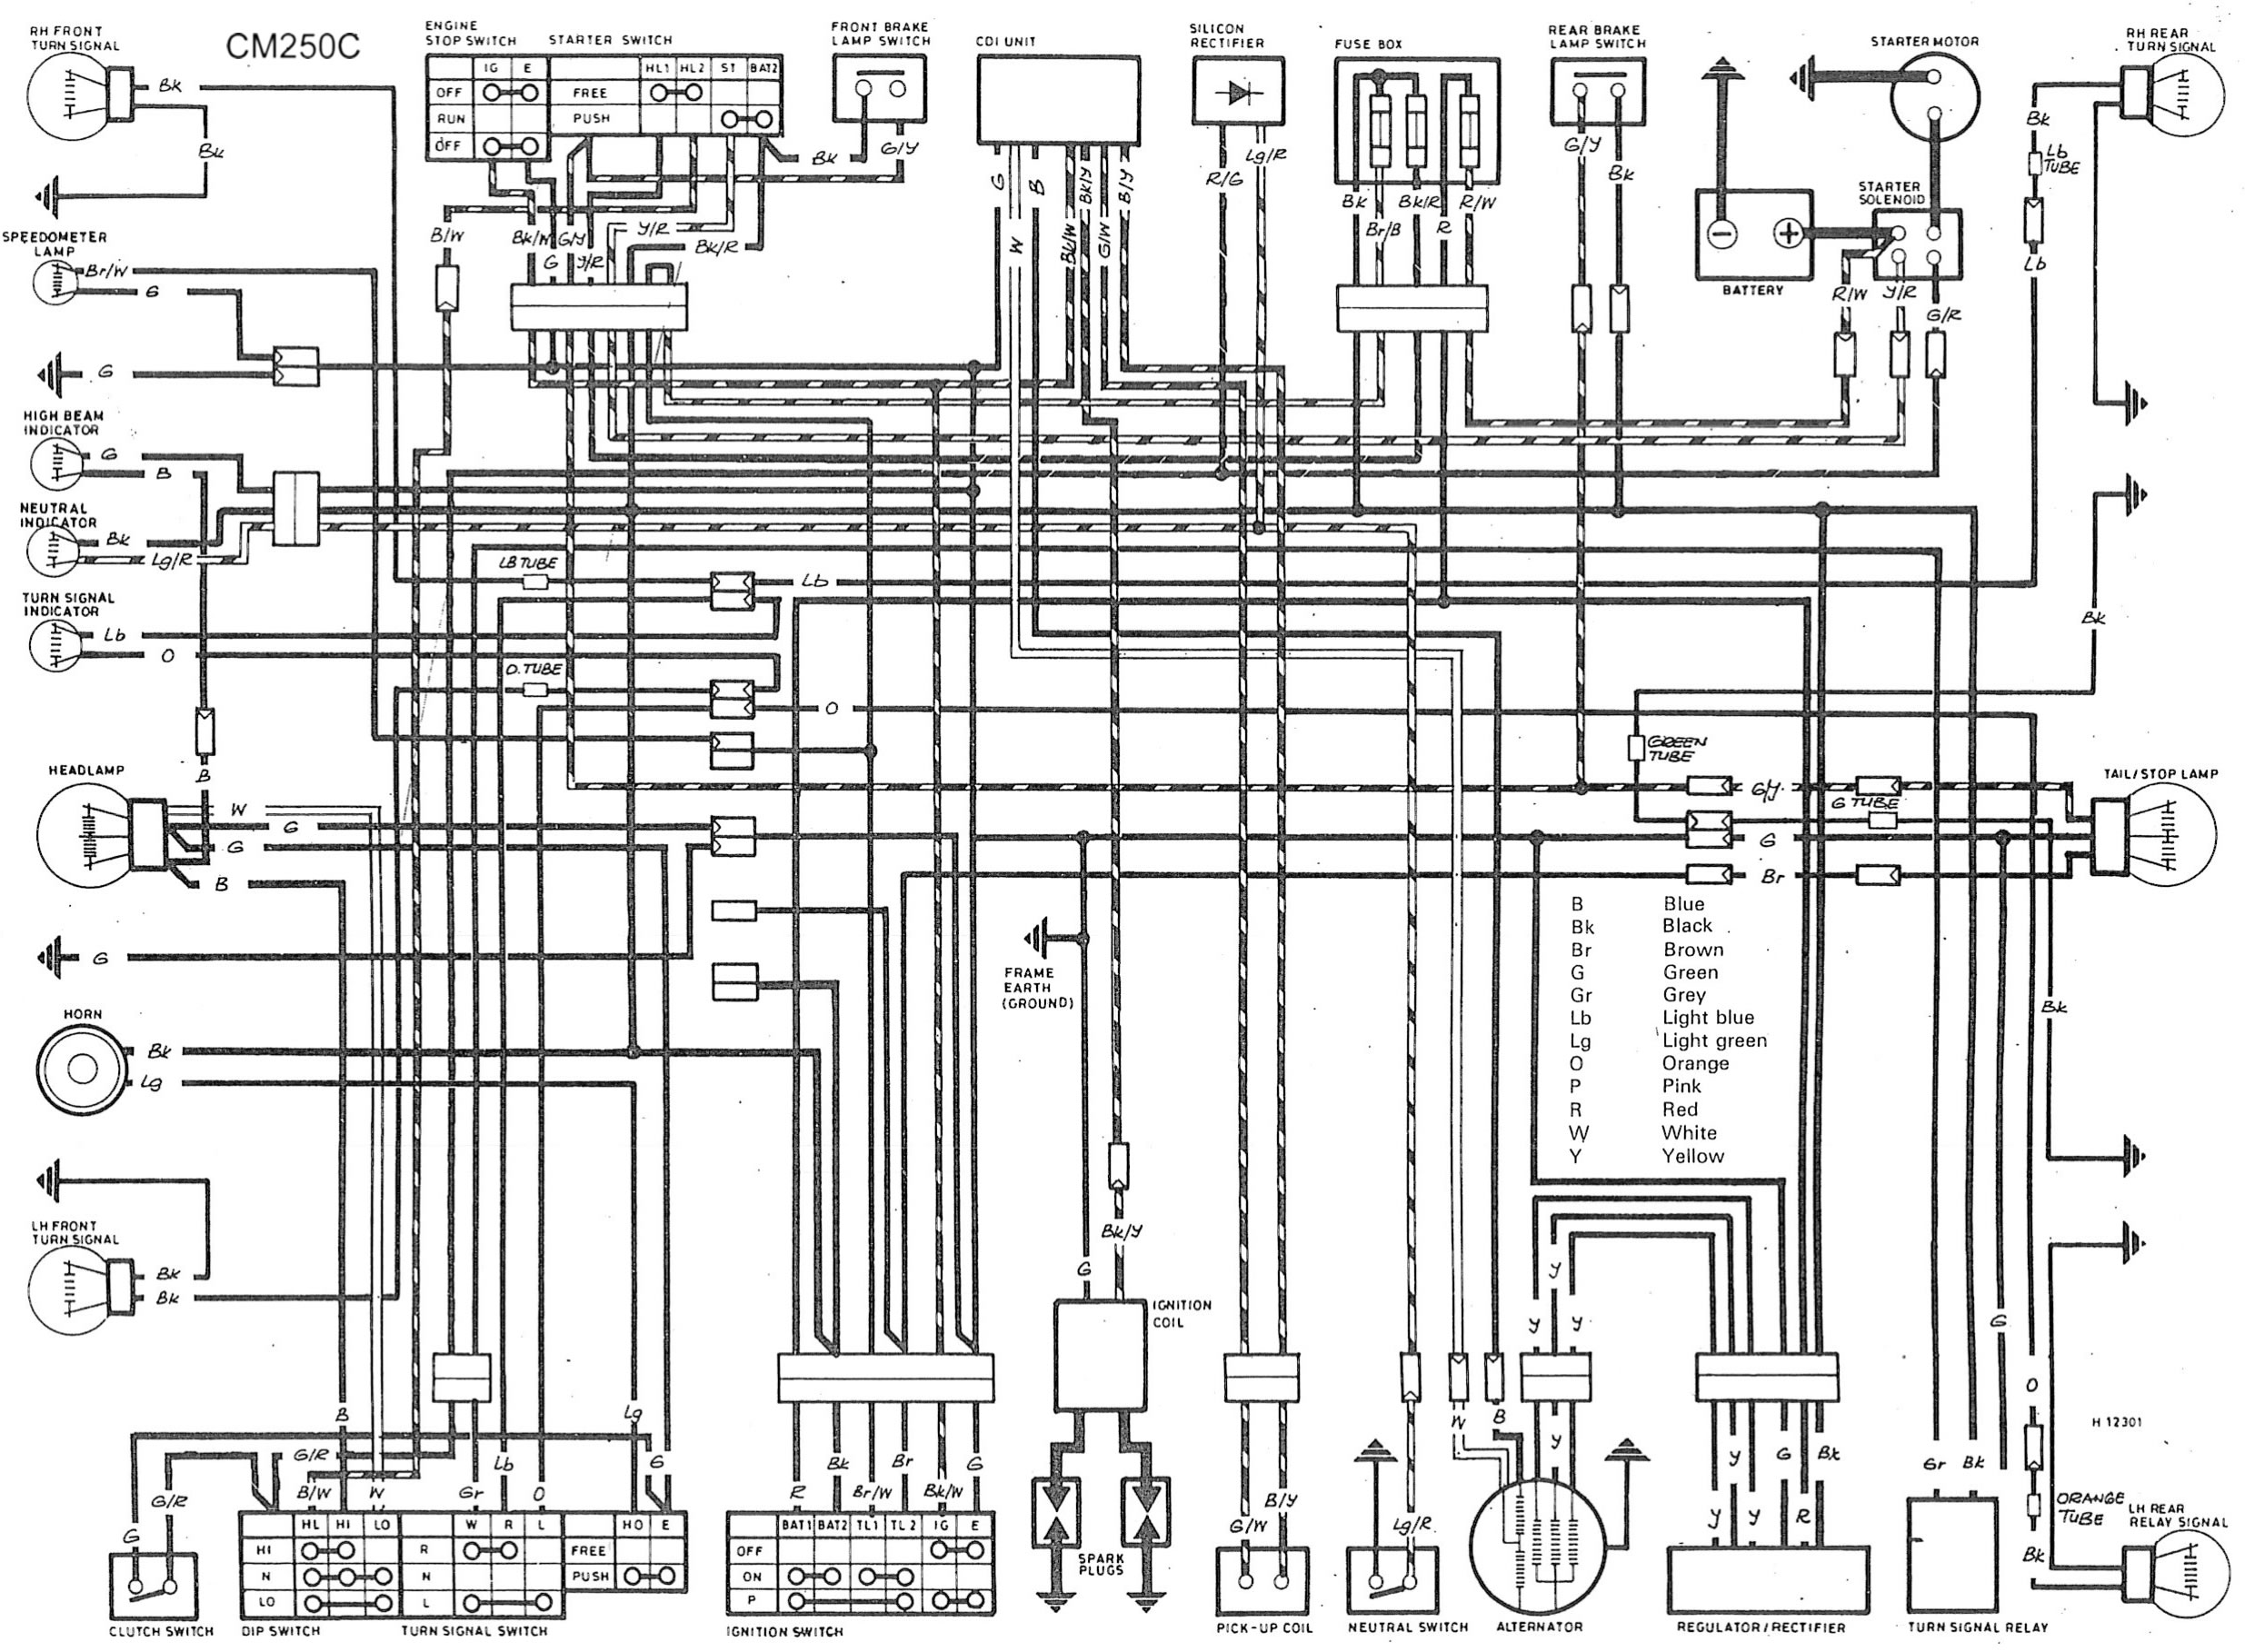 wiring diagram needed bad honda rebel forum